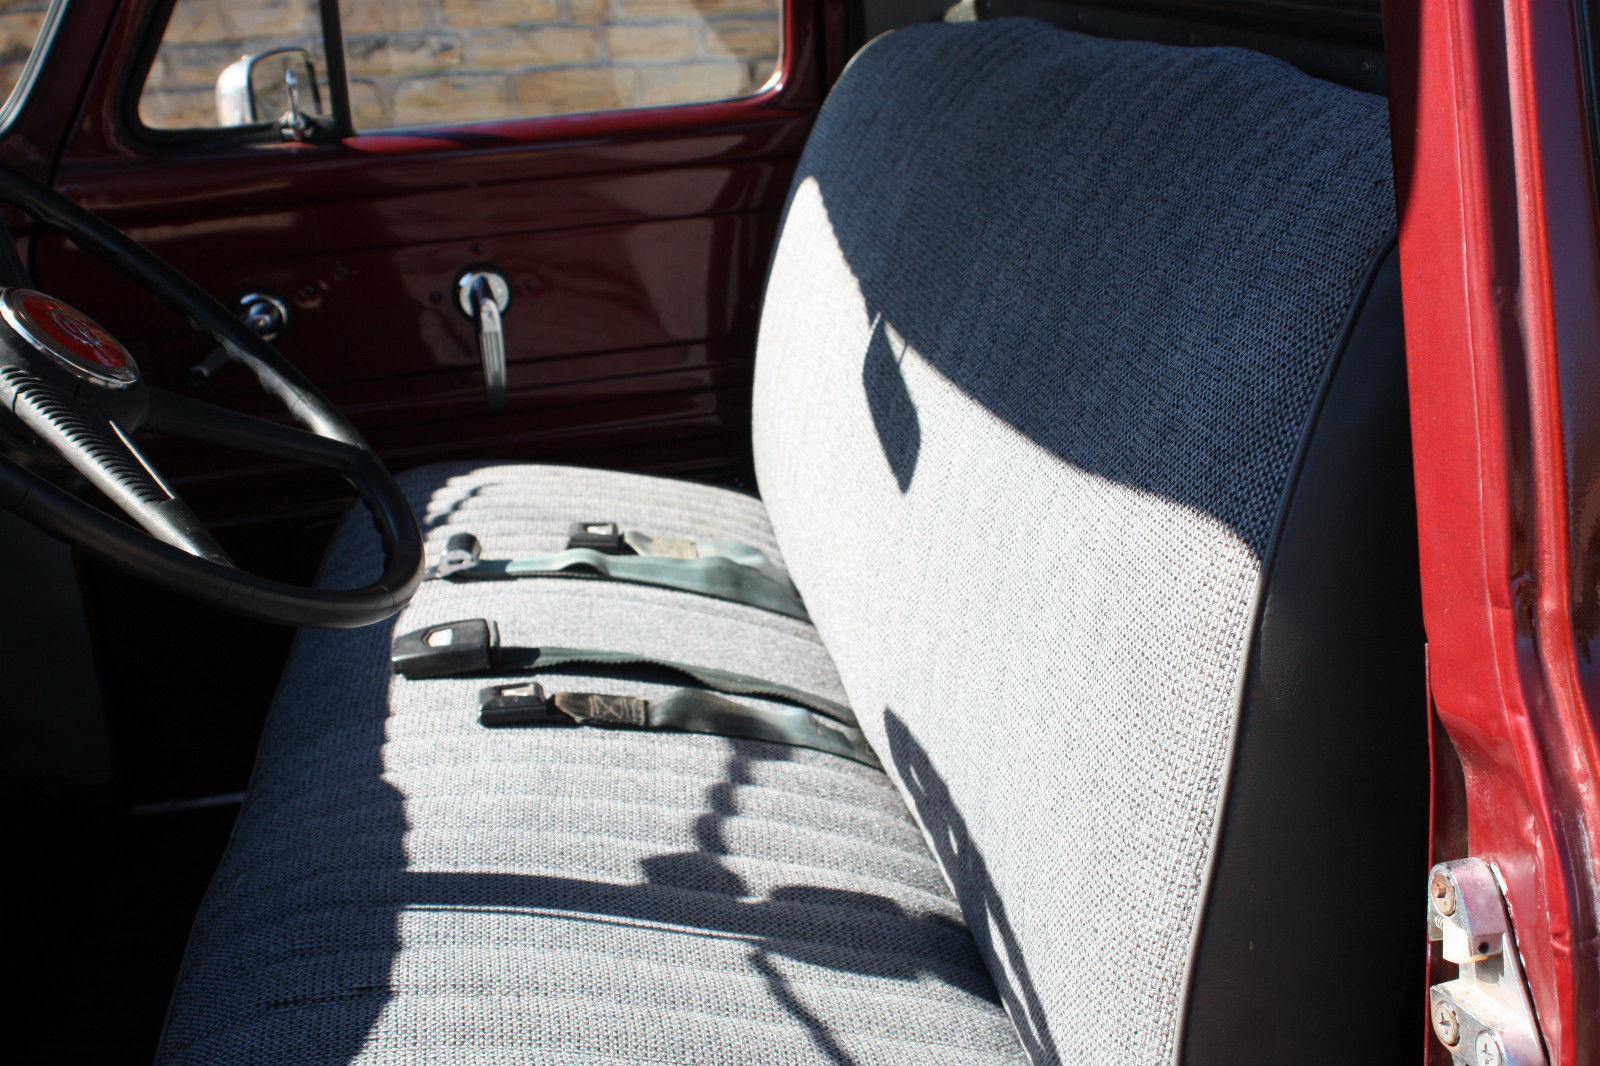 1955 Ford F 100 With A 239 Y Block And 3 Speed Column Shift Transmission F100 Heater Core